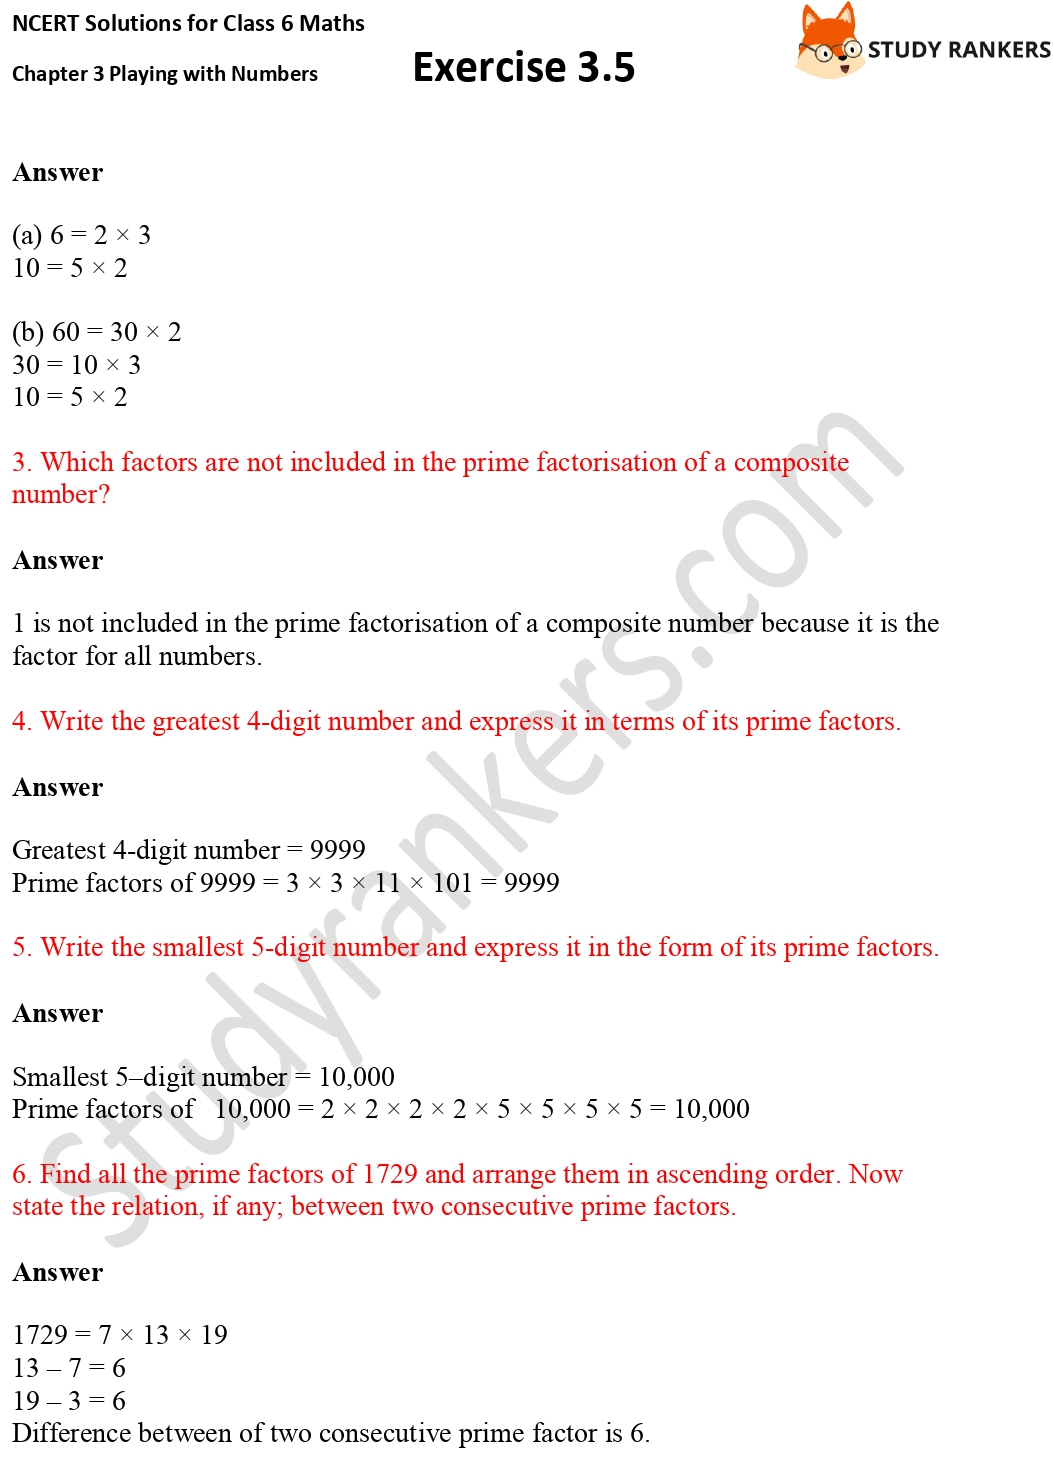 NCERT Solutions for Class 6 Maths Chapter 3 Playing with Numbers Exercise 3.5 Part 2